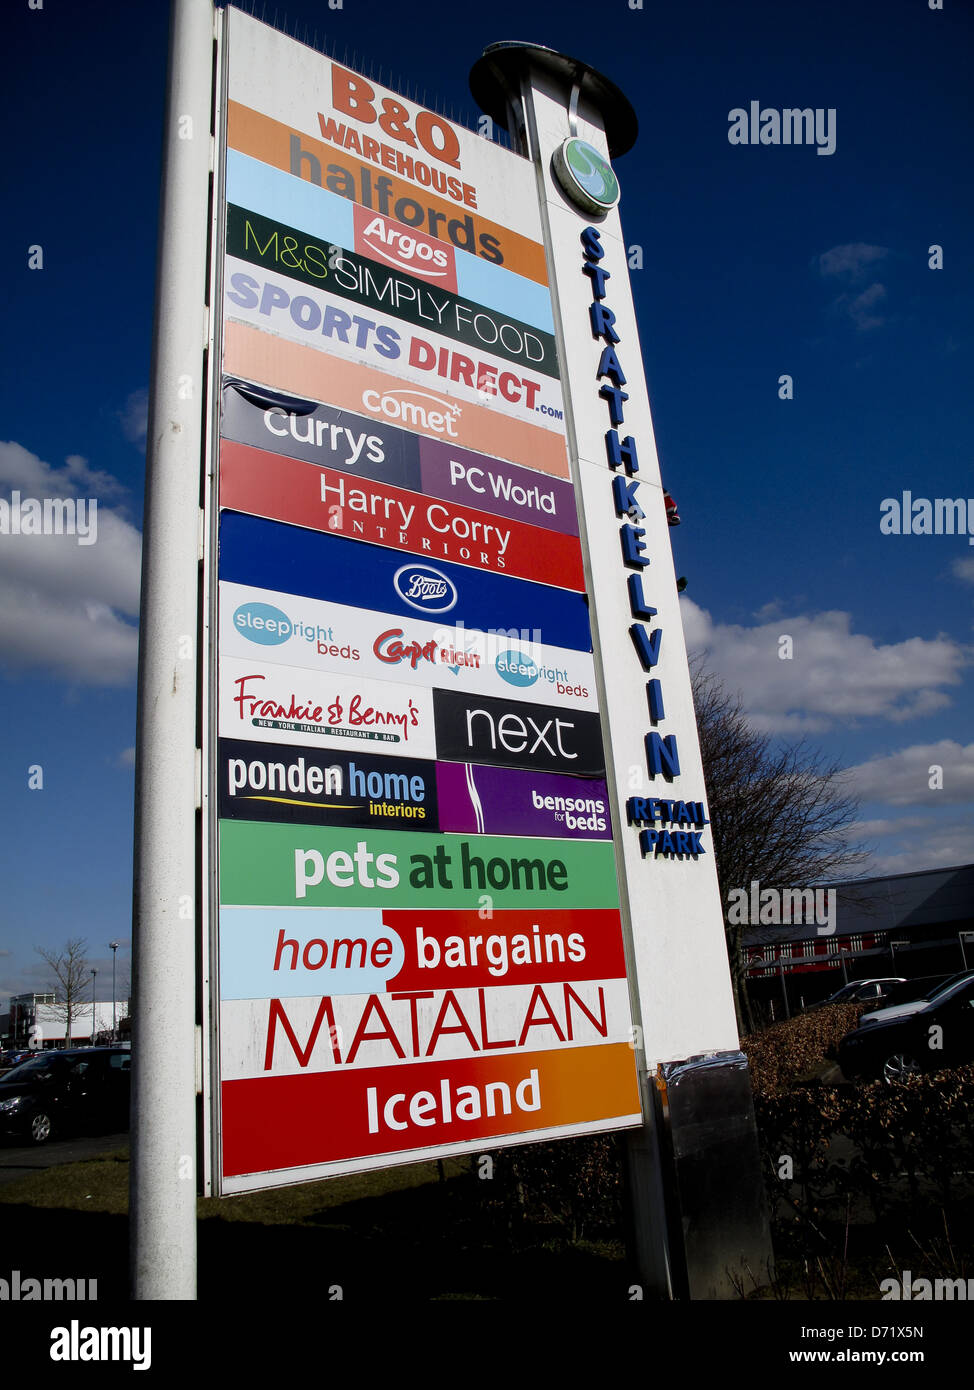 bensons for beds stock photos u0026 bensons for beds stock images alamy